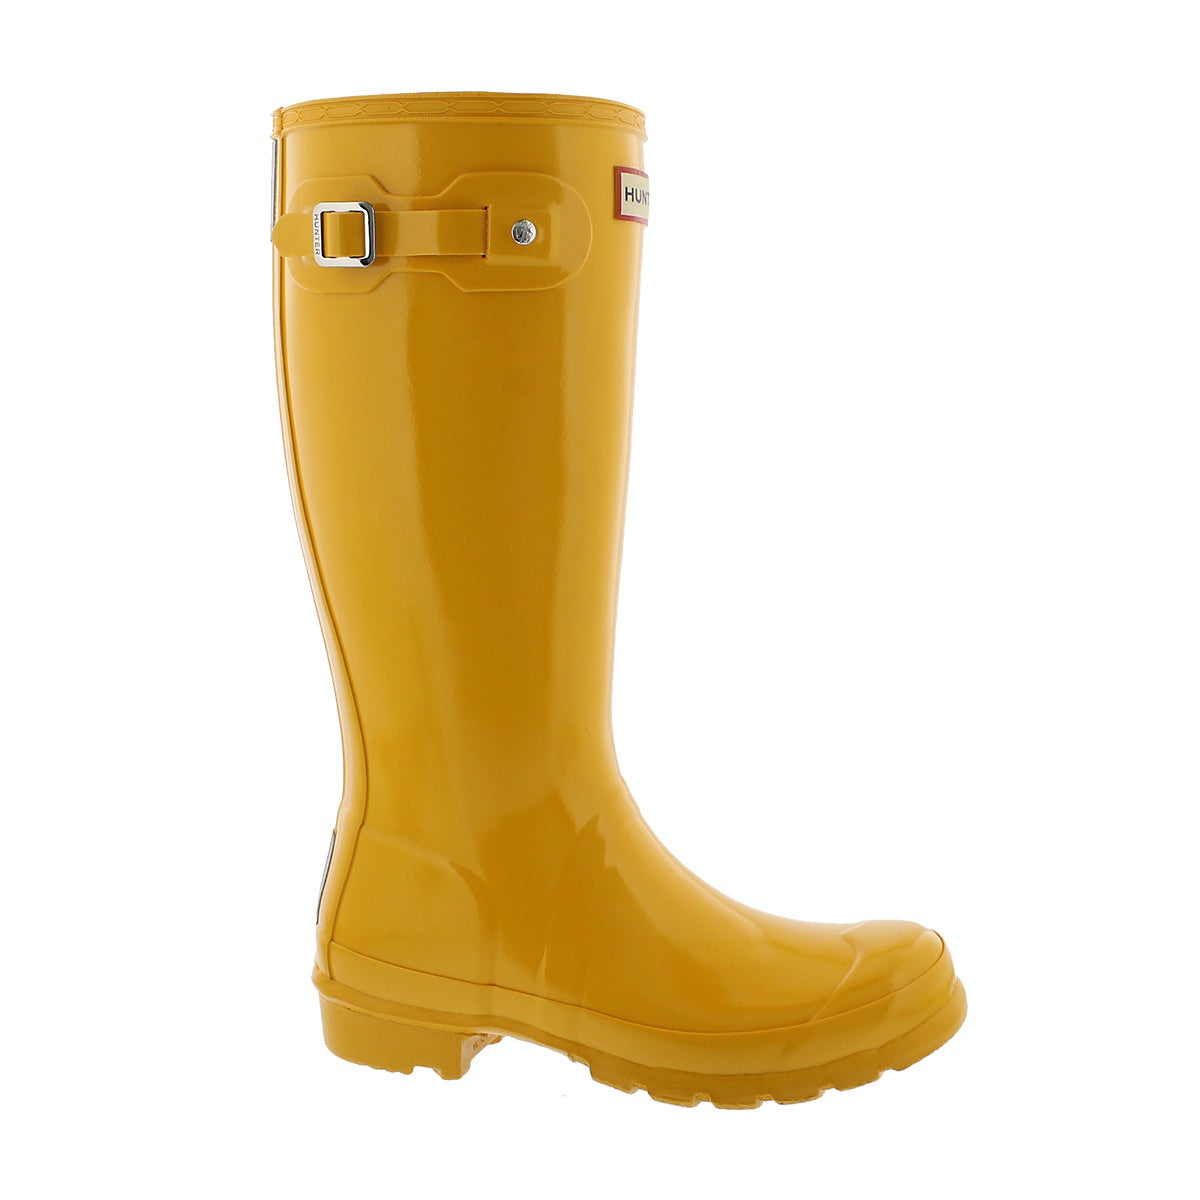 Girls' ORIGINAL GLOSS yellow rain boots